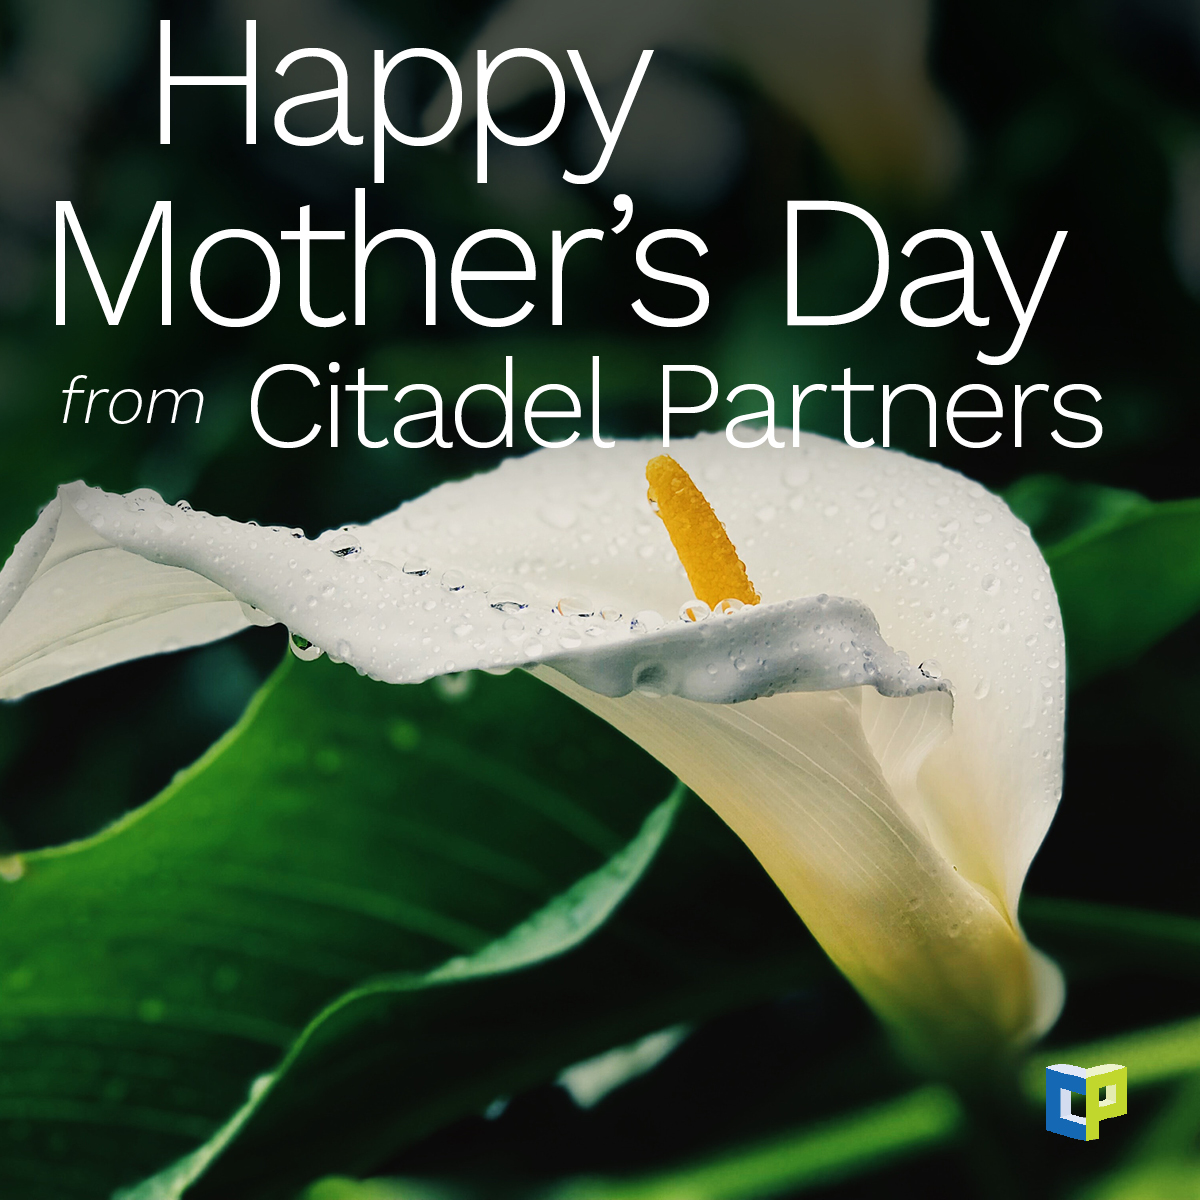 test Twitter Media - Happy Mother's Day from Citadel Partners!  #CitadelPartners https://t.co/eImZDHjQ5t